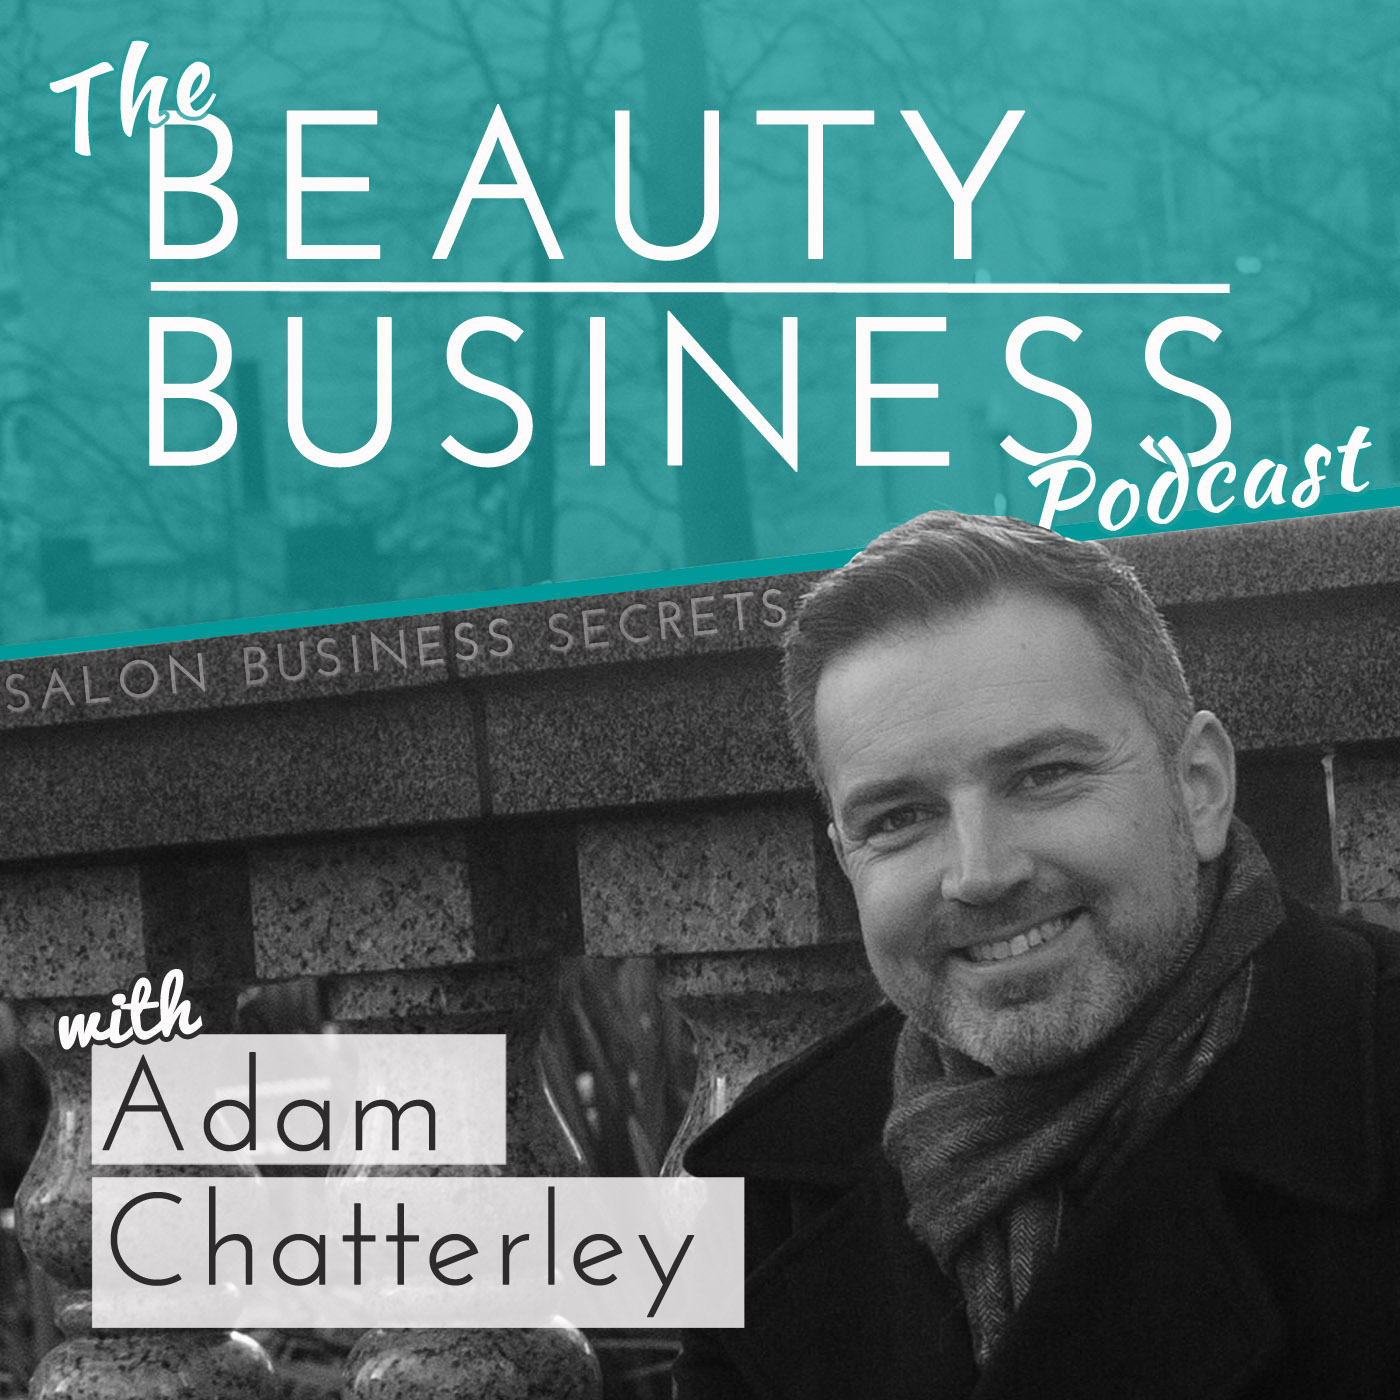 The Beauty Business Podcast